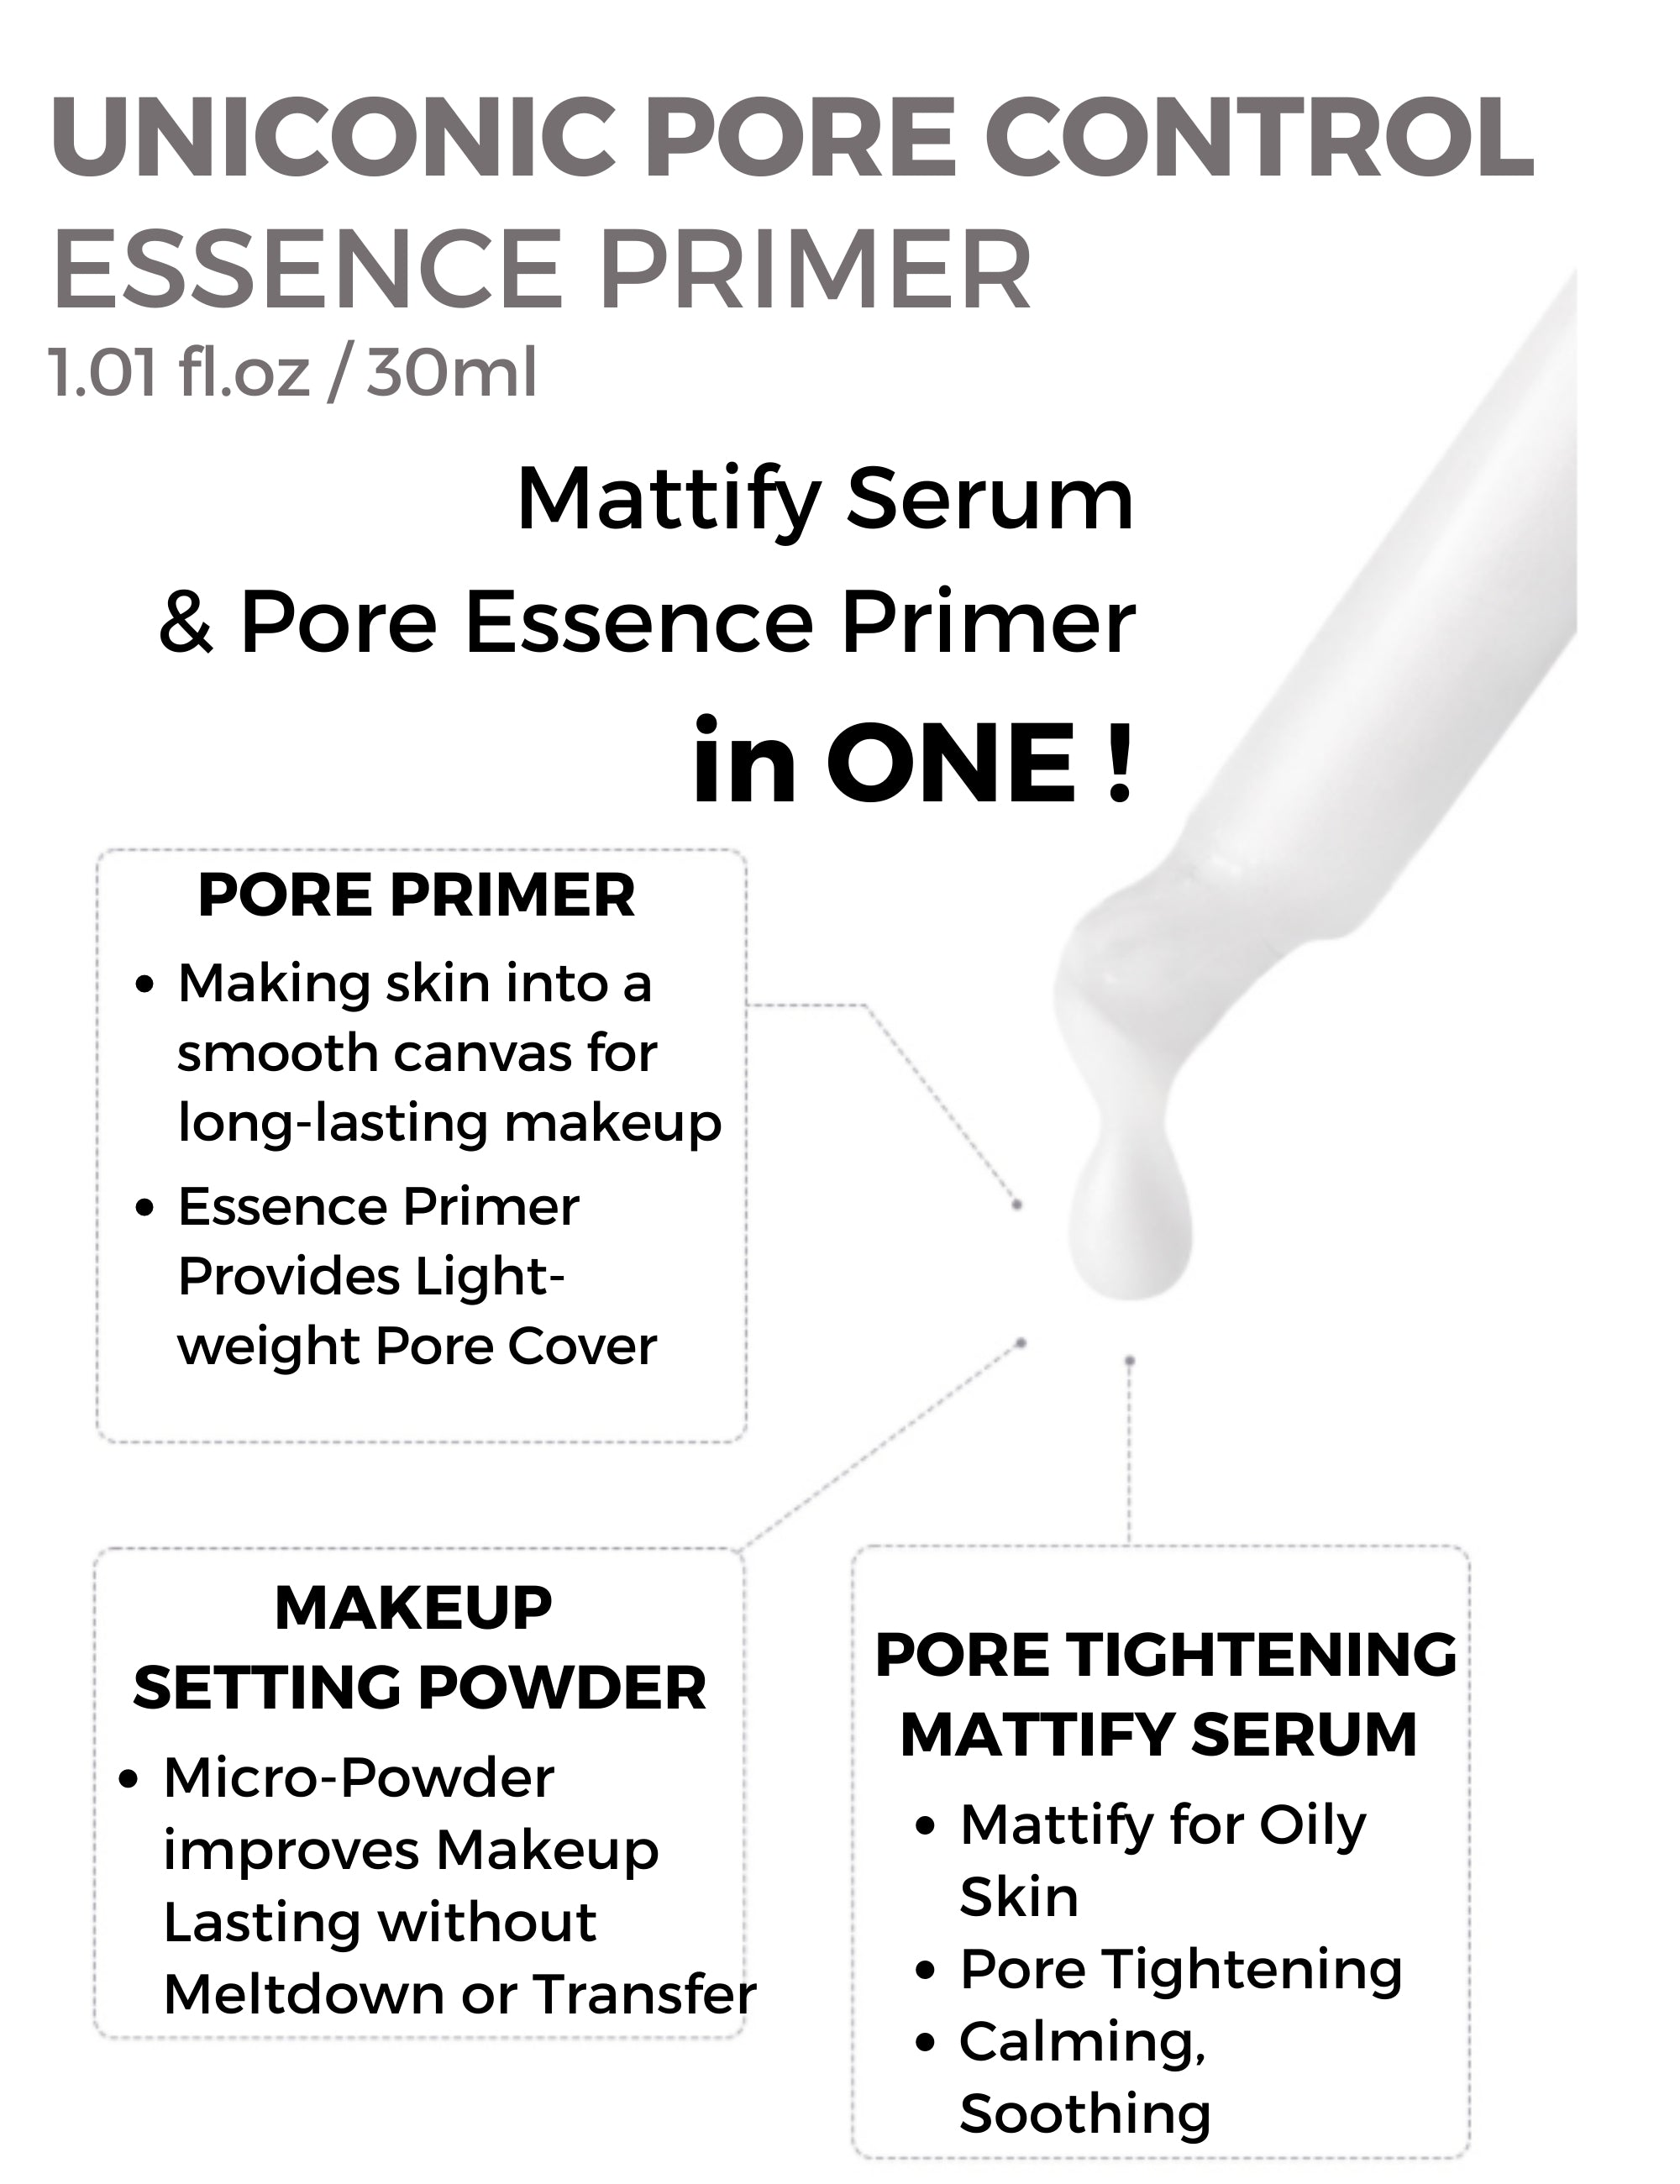 UNICONIC Pore Blurring Face Serum to Primer for Oily Skin 1.01fl.oz (30ml) - SELF BEAUTY